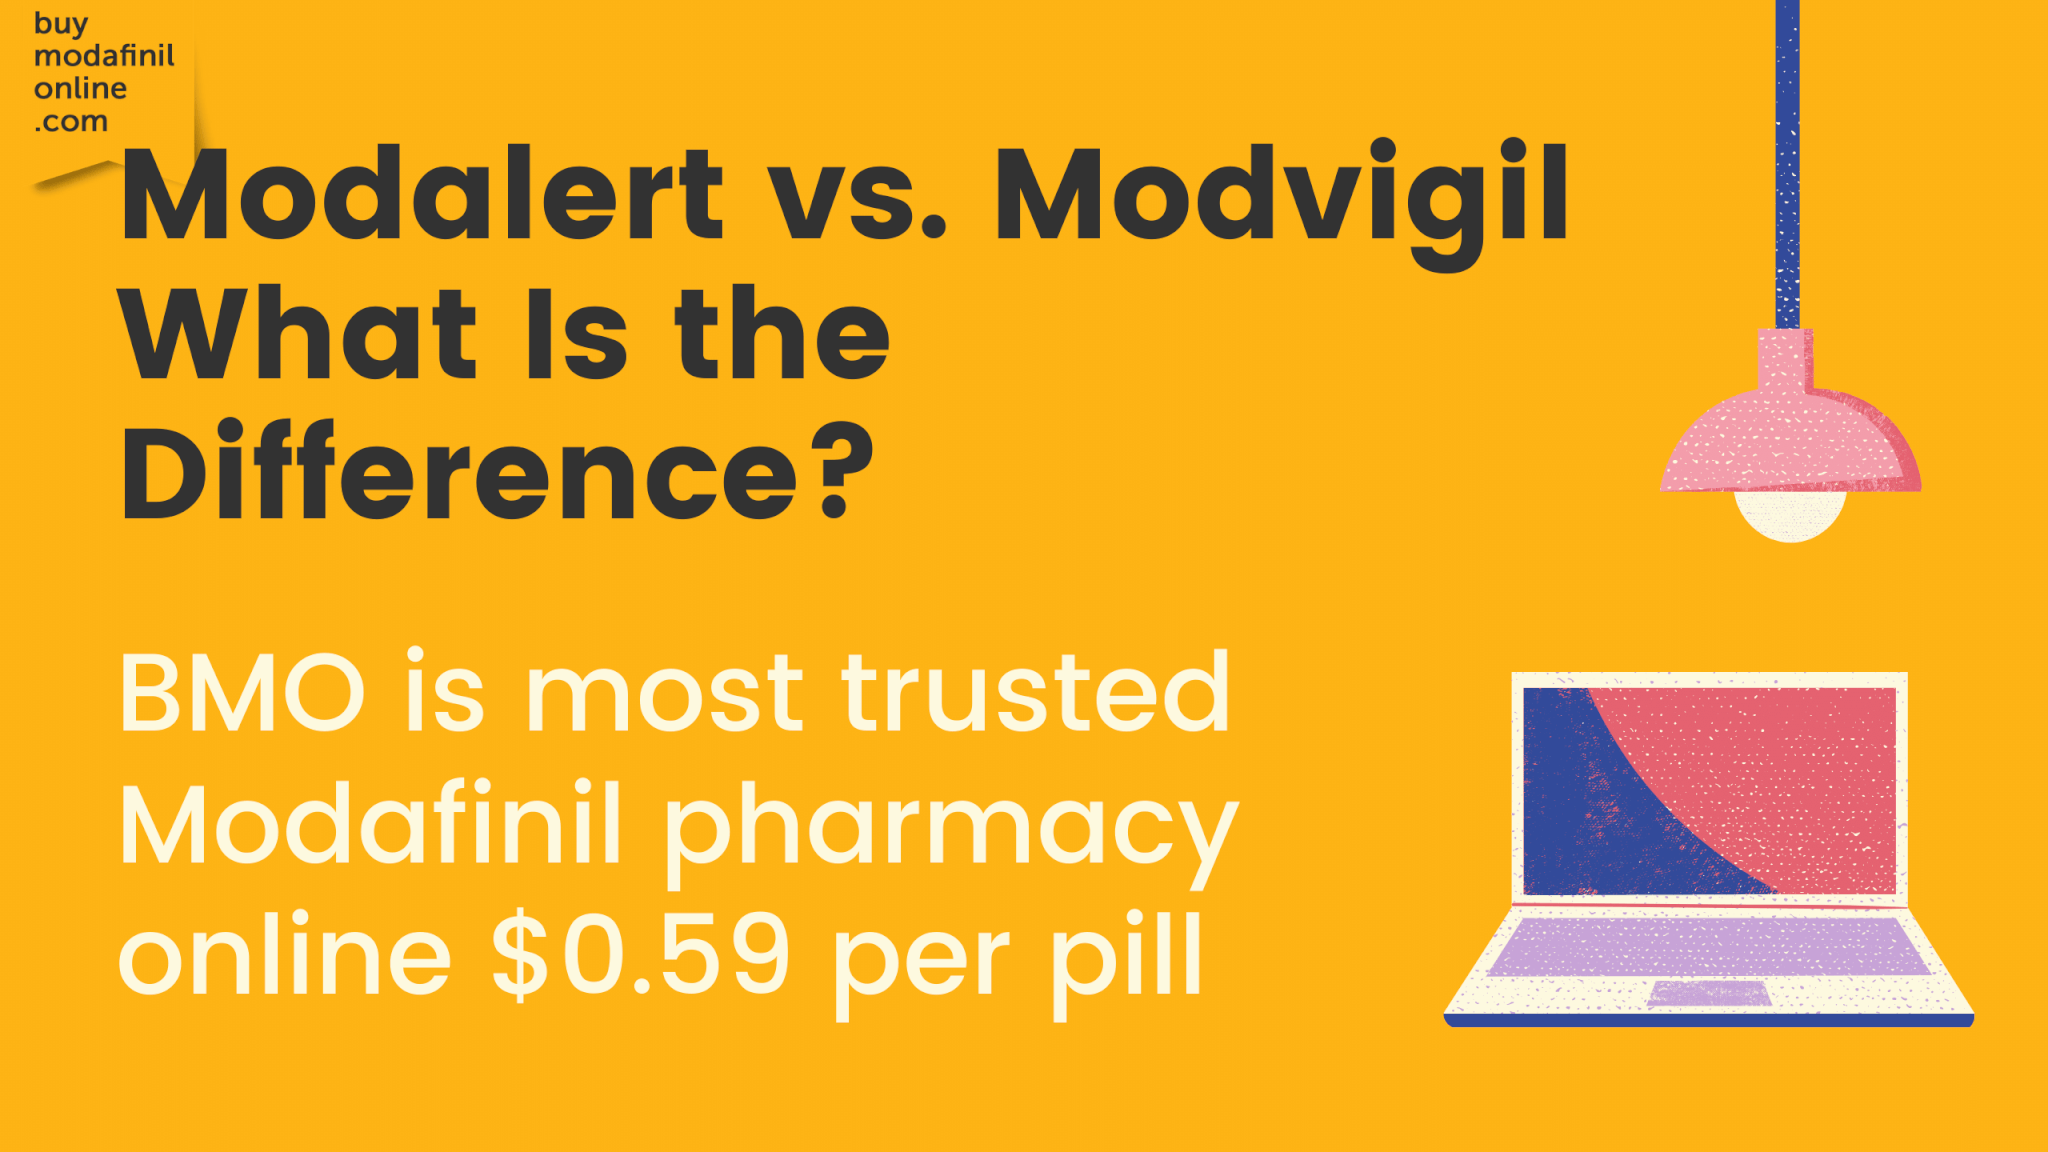 Compare Modalert vs Modvigil: Which One Is Better